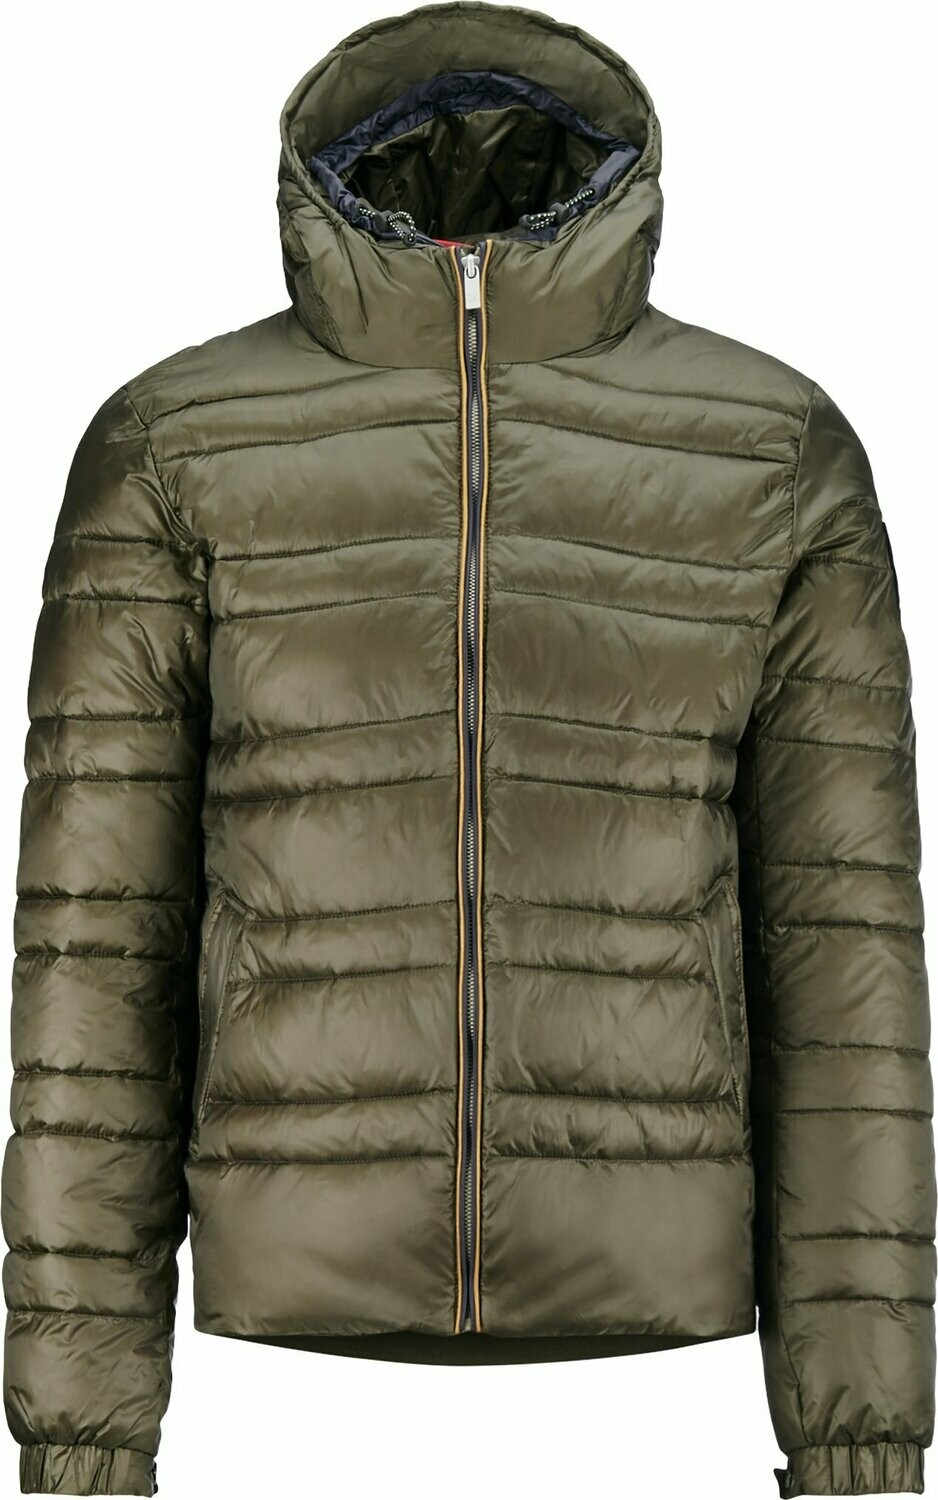 Scotch & Soda Primaloft Insulated Jacket - MEN's, XLarge